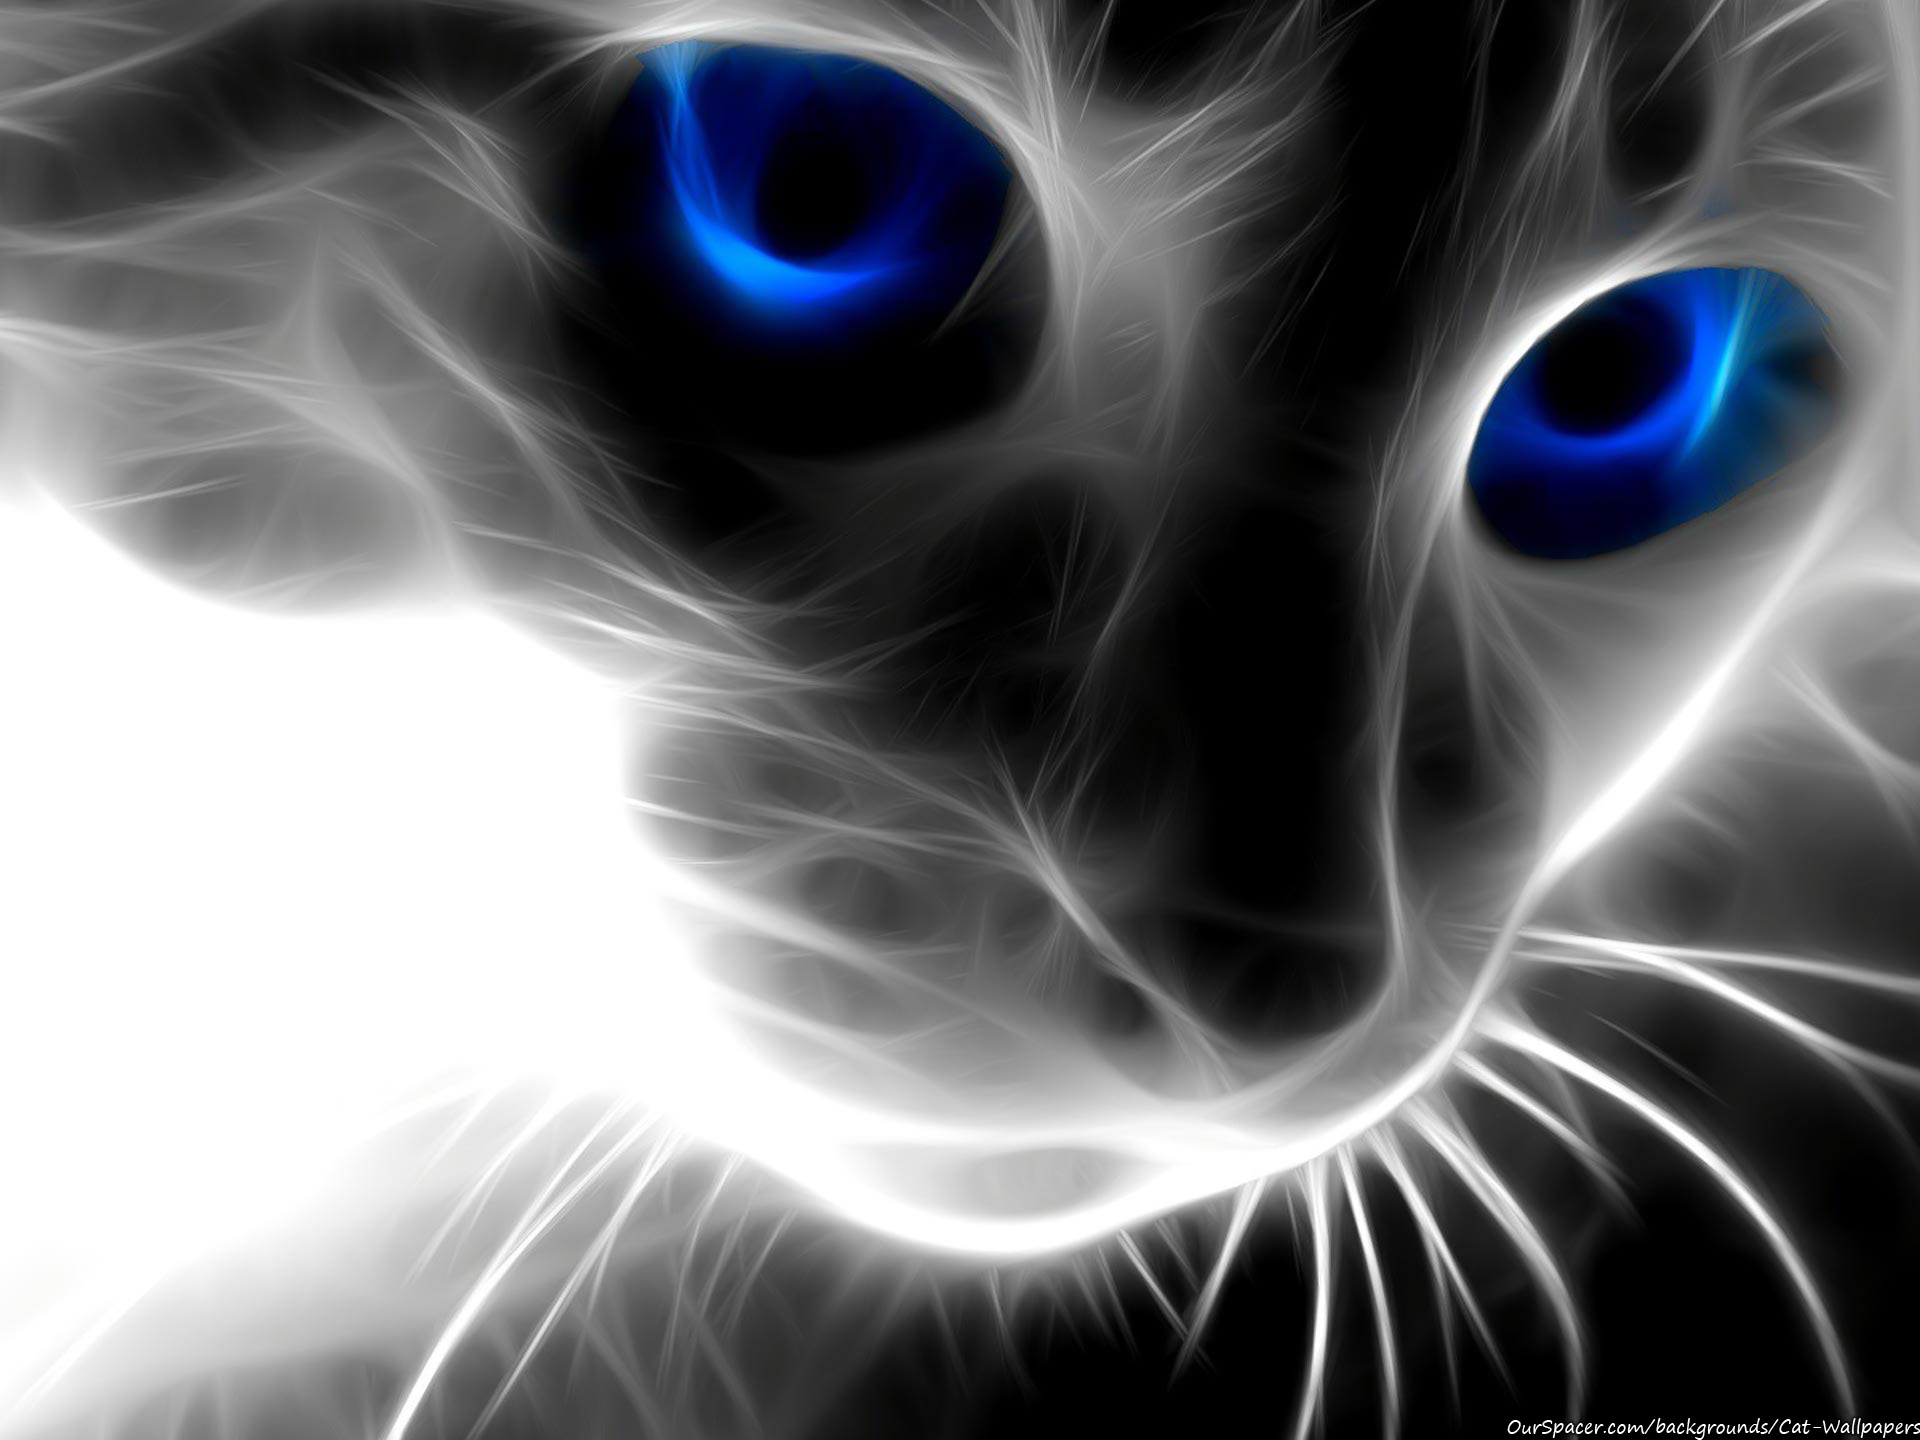 Transparent cat made of light with blue eyes wallpapers for myspace, twitter, and hi5 backgrounds